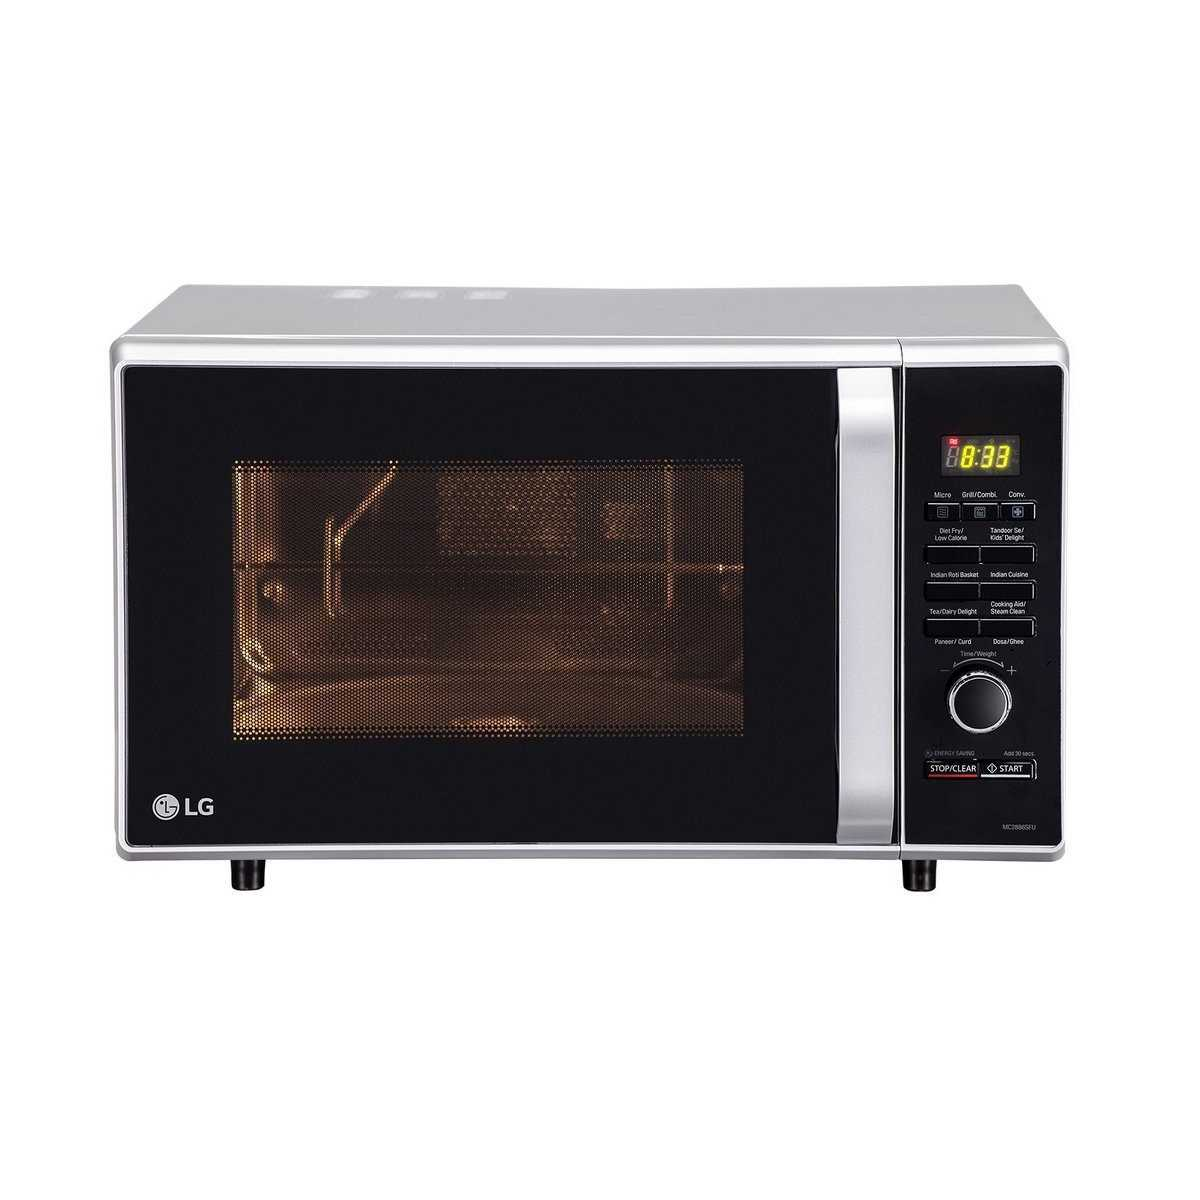 LG MC2886SFU 28 Litres Convection Microwave Oven